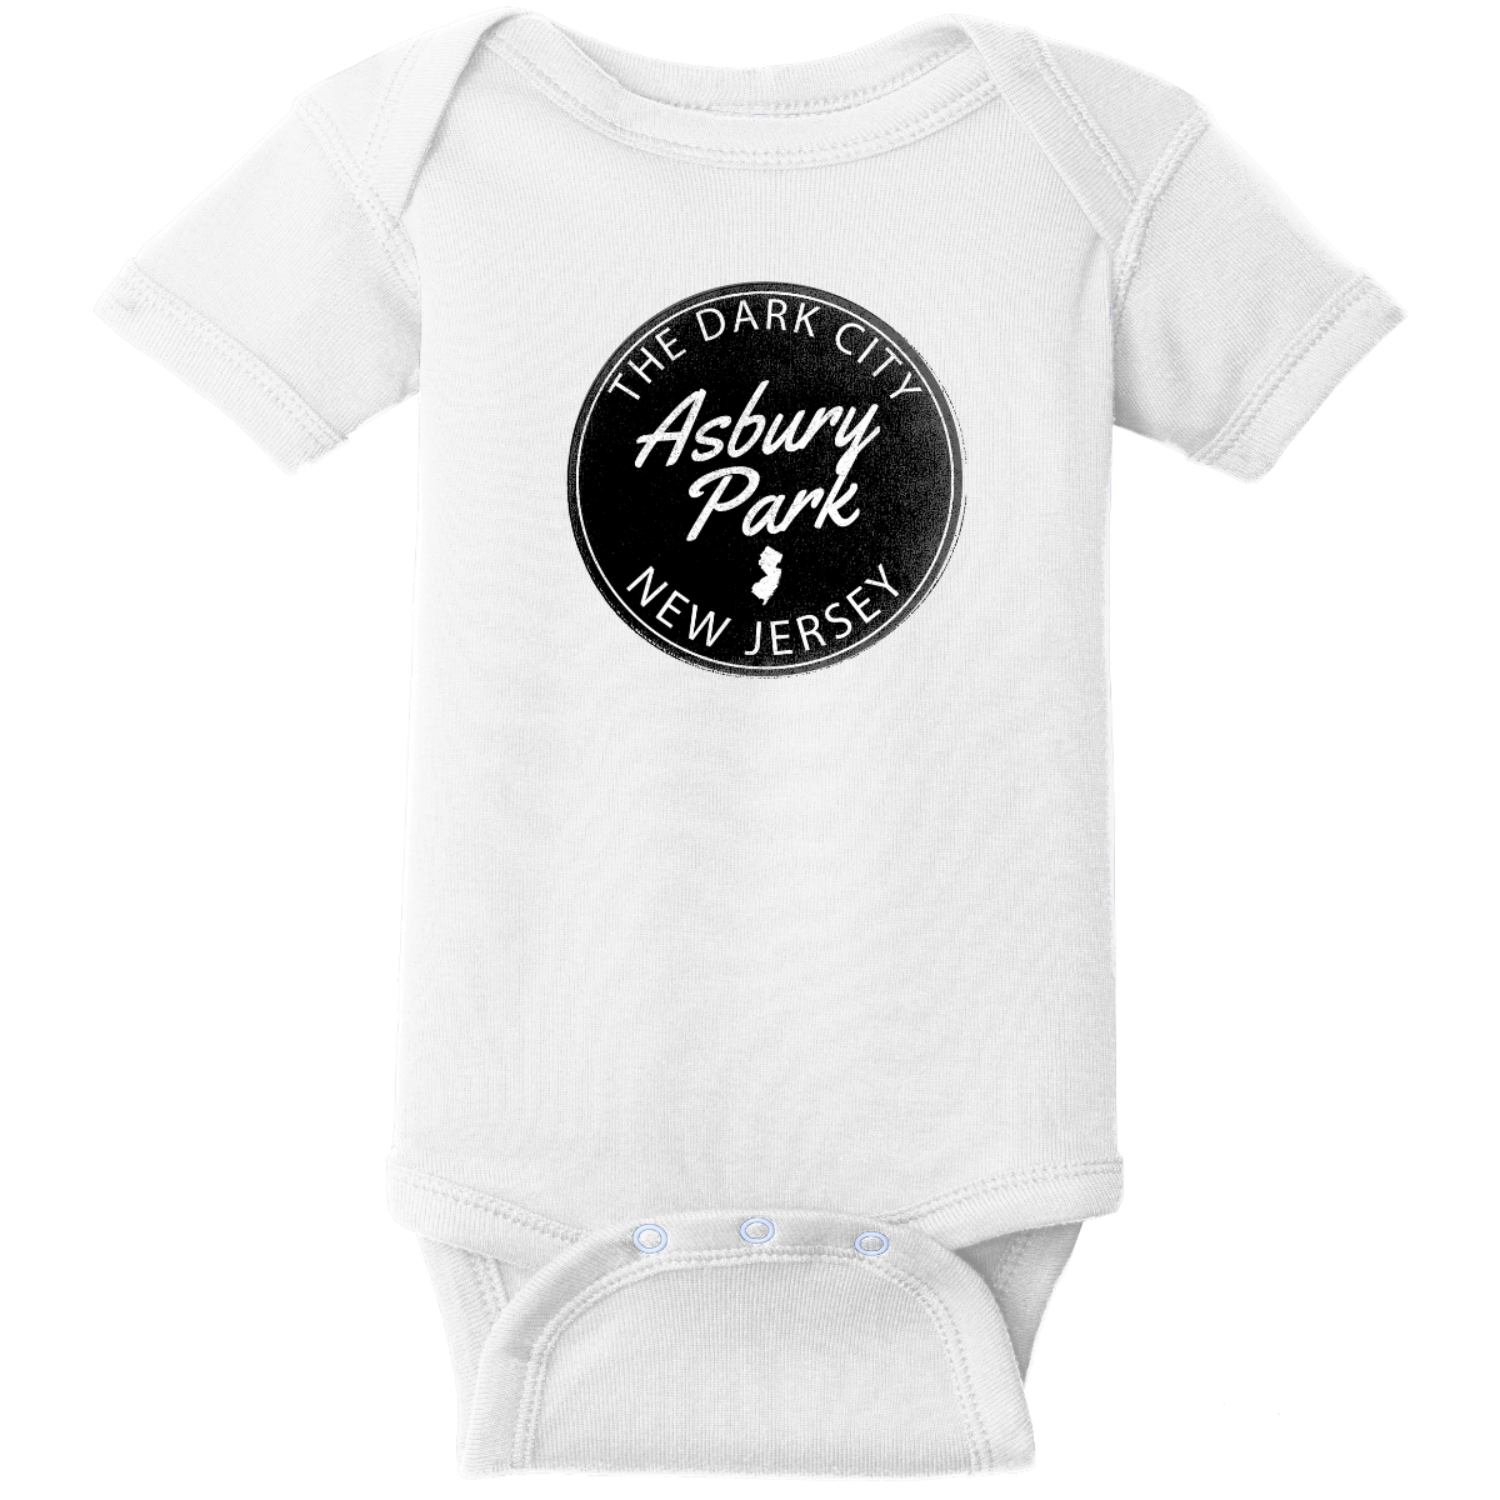 Asbury Park NJ Dark City Baby Bodysuit White Rabbit Skins Infant Short Sleeve Infant Rib Bodysuit RS4400